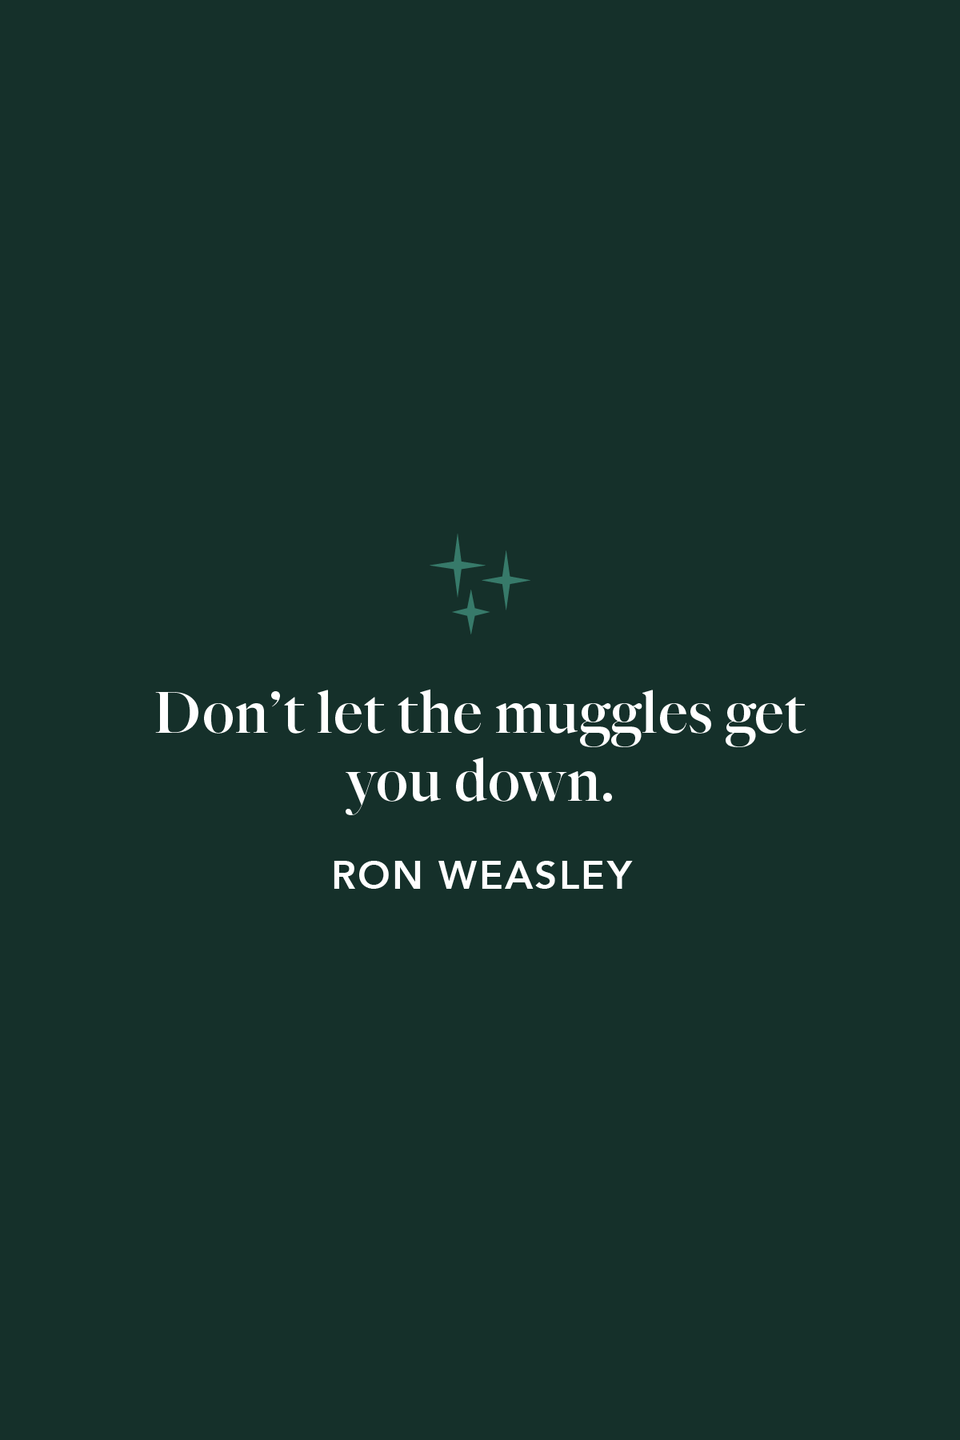 """<p>With words of encouragement to Harry, Ron says, """"Don't let the muggles get you down,"""" in chapter 1 of <em>The Prisoner of Azkaban</em>.</p>"""